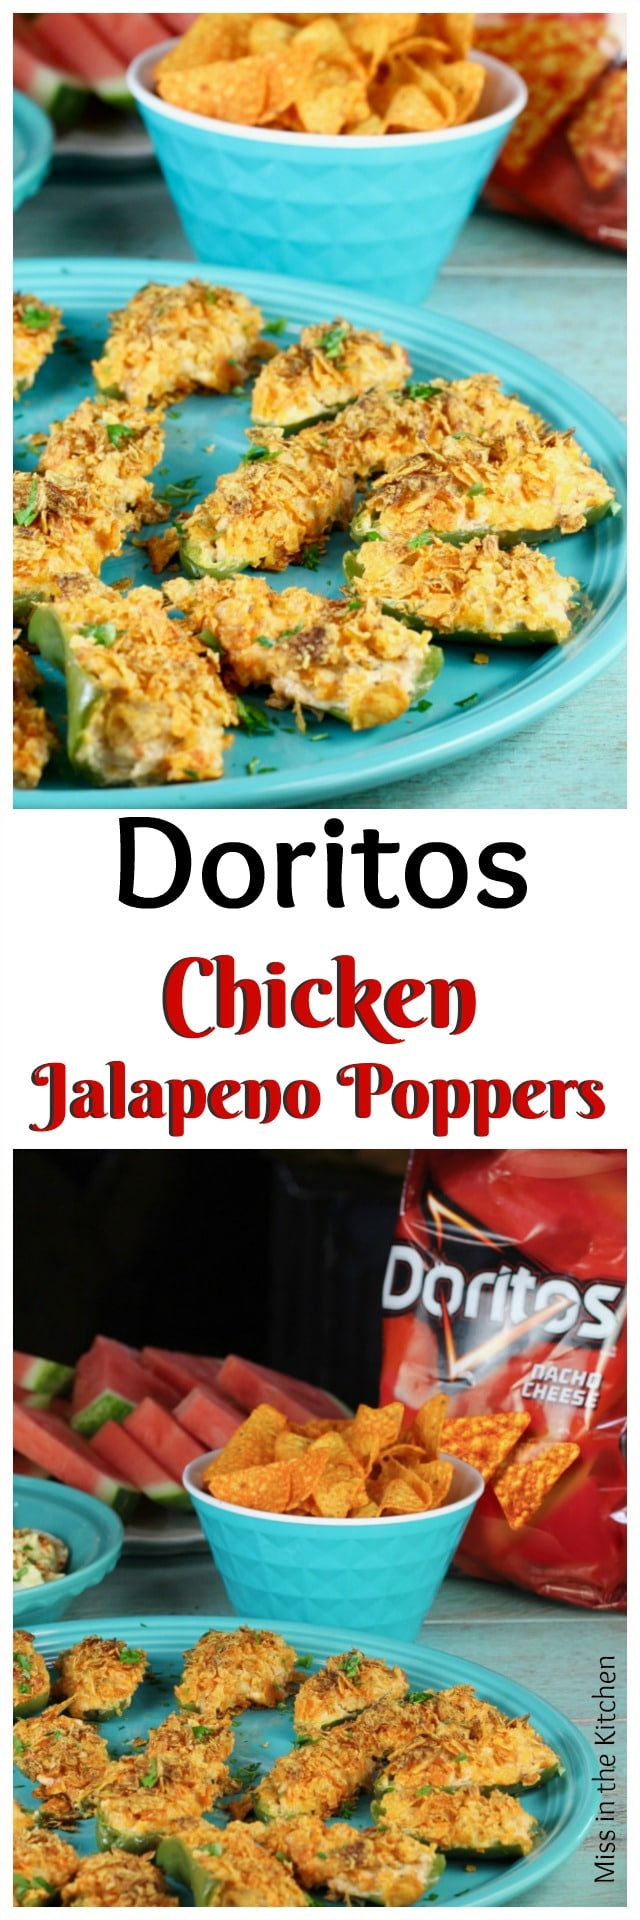 Doritos Chicken Jalapeno Poppers Recipe from MissintheKitchen.com Easy Summer Appetizer! #Ad #SayYesToSummer